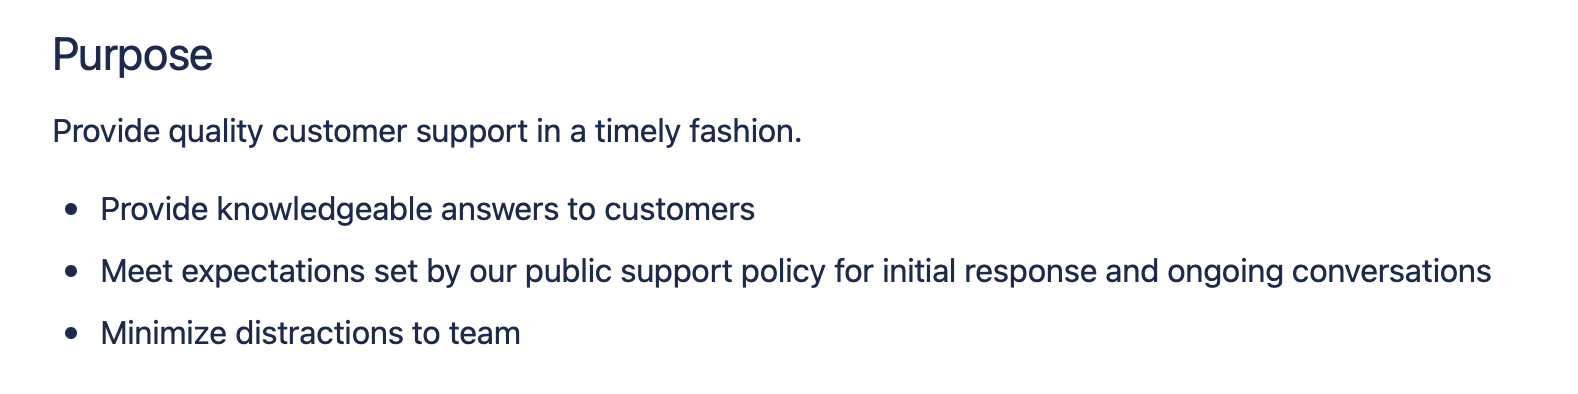 Excerpt from support policy